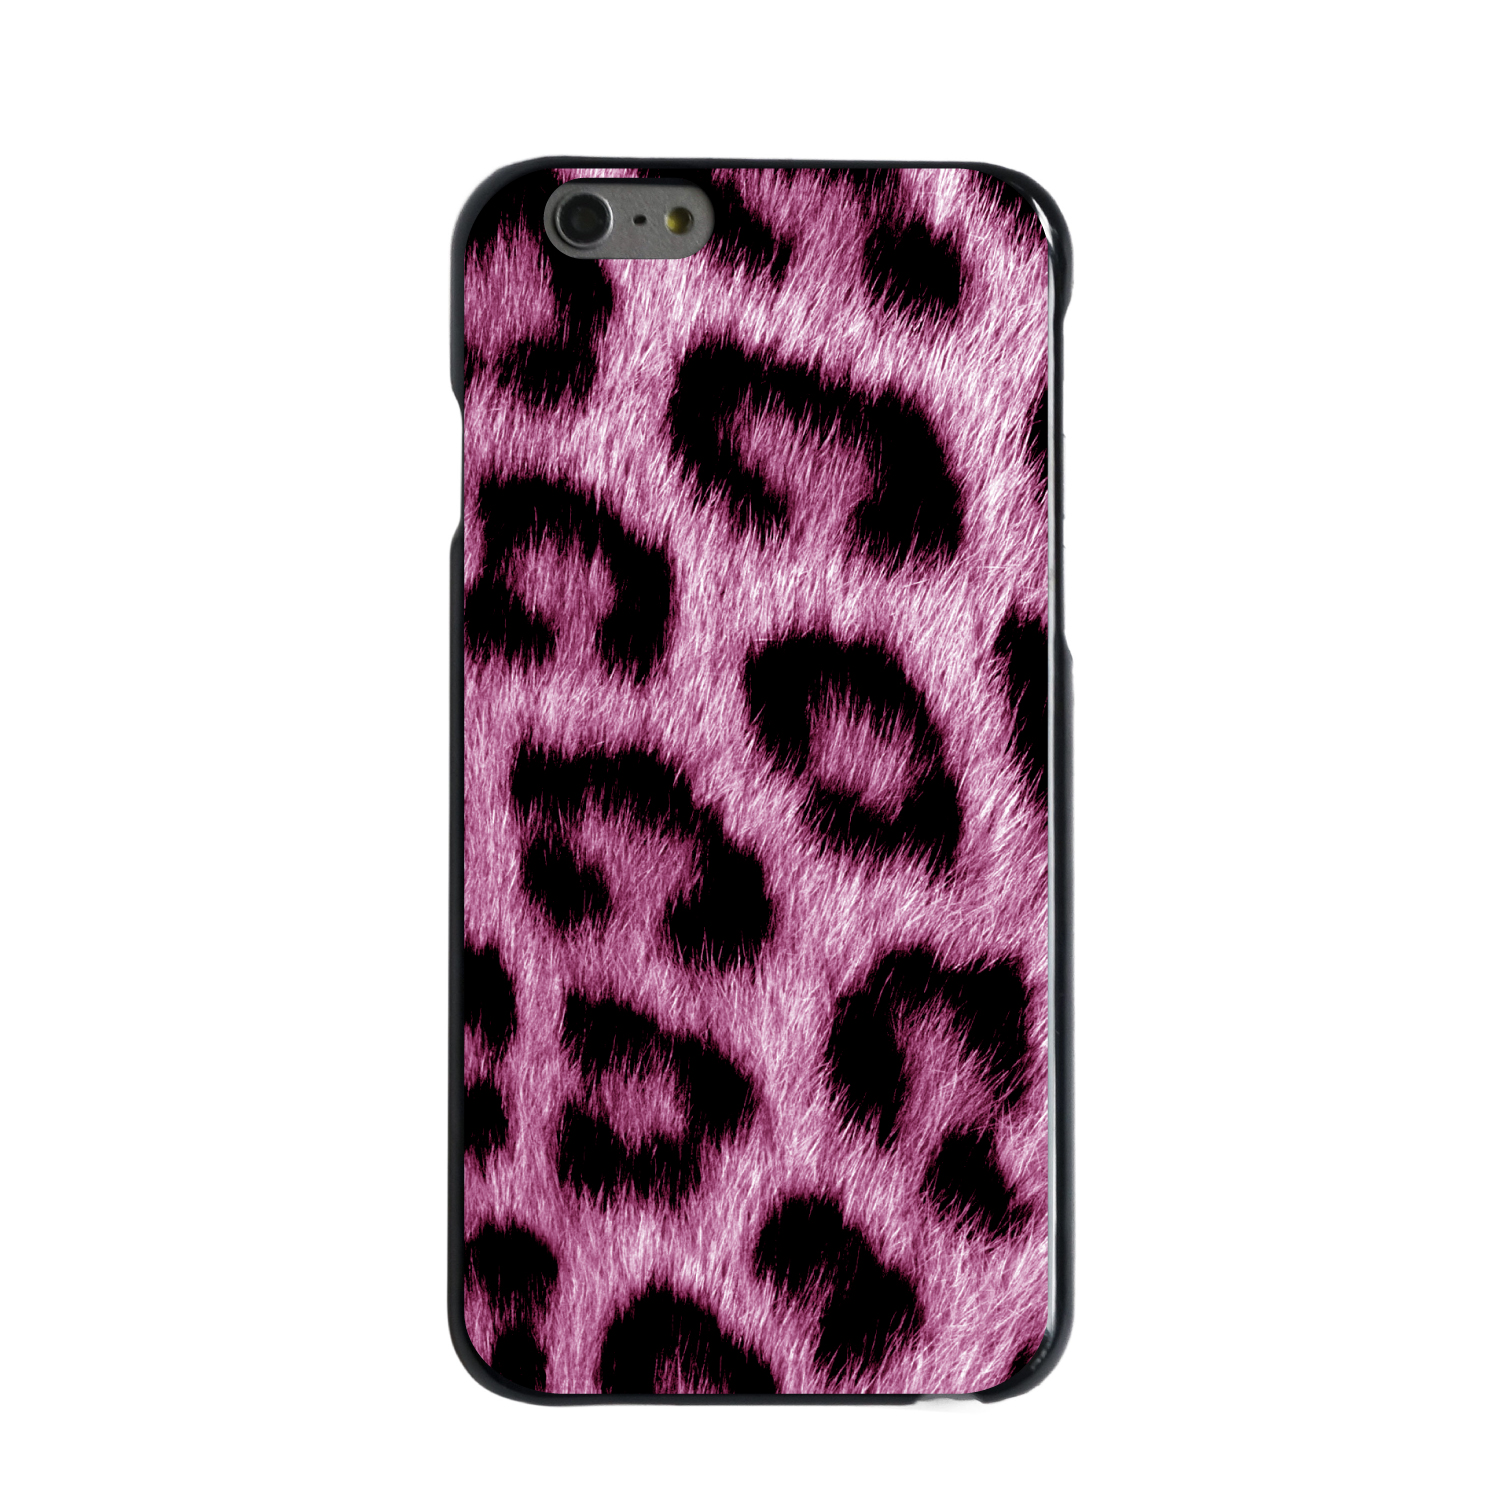 "CUSTOM Black Hard Plastic Snap-On Case for Apple iPhone 7 / iPhone 8 (4.7"" Screen) - Pink Black Leopard Fur Skin"